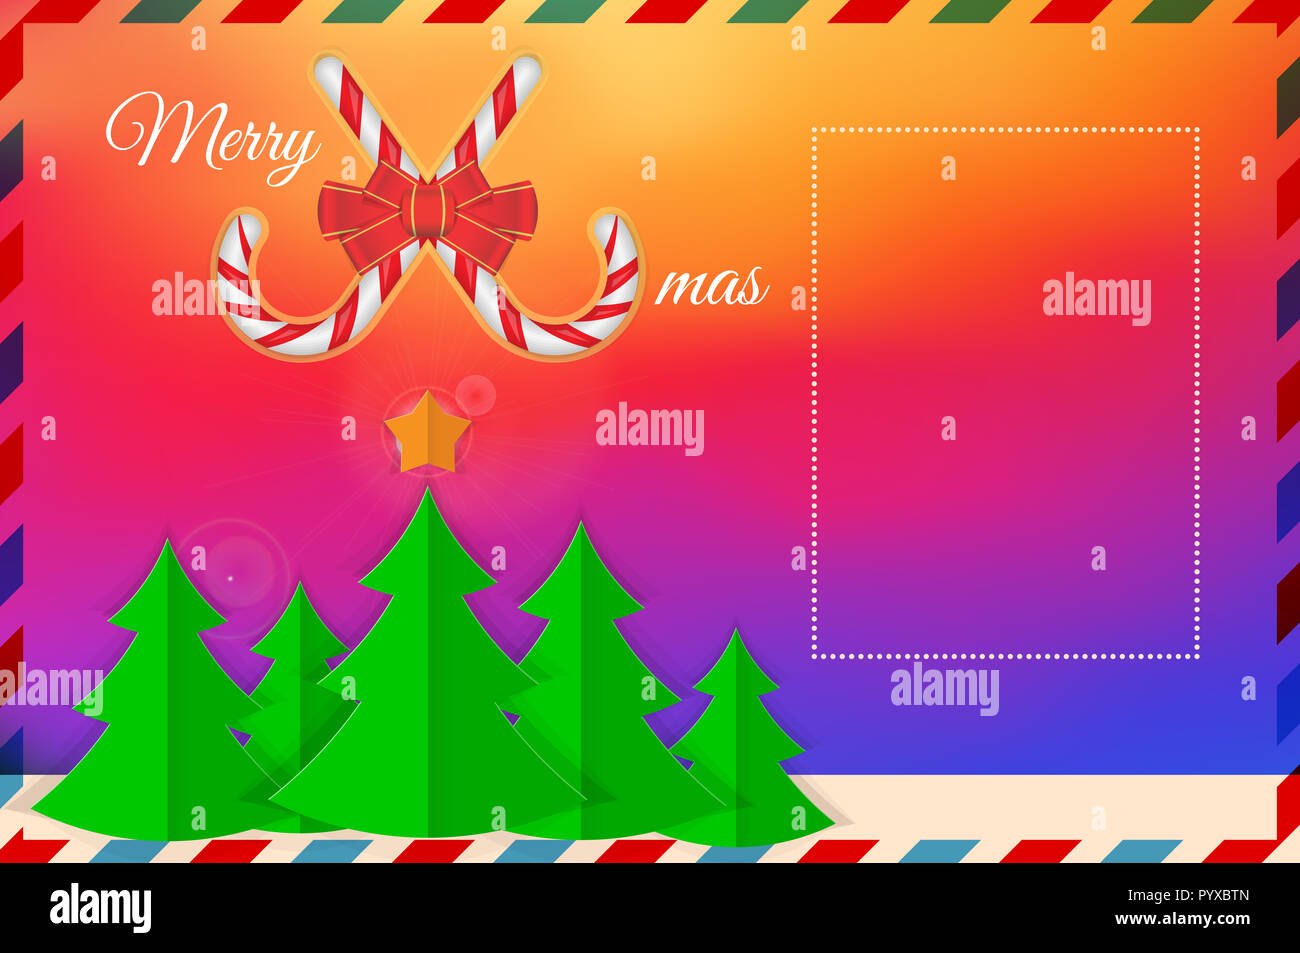 Bright Gradient, Fir-Trees. Christmas Greeting Card Template. Merry Christmas, Happy New Year Design Elements. Resource for Creating Postcards, Calend - Stock Image